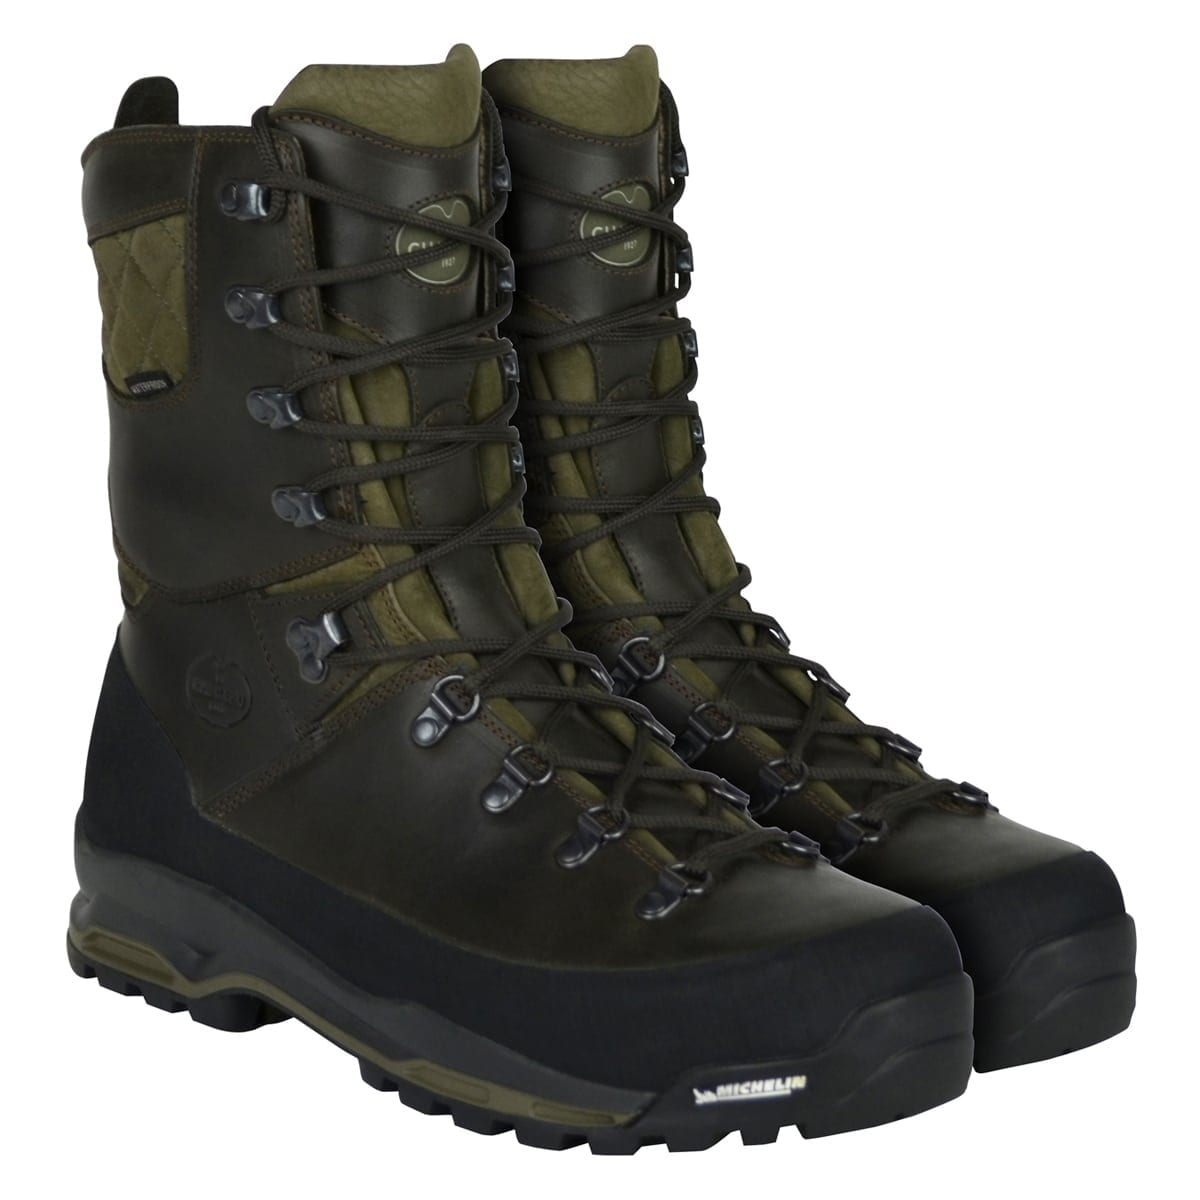 Le Chameau Condor LCX Mens Hunting Boot Wadswick